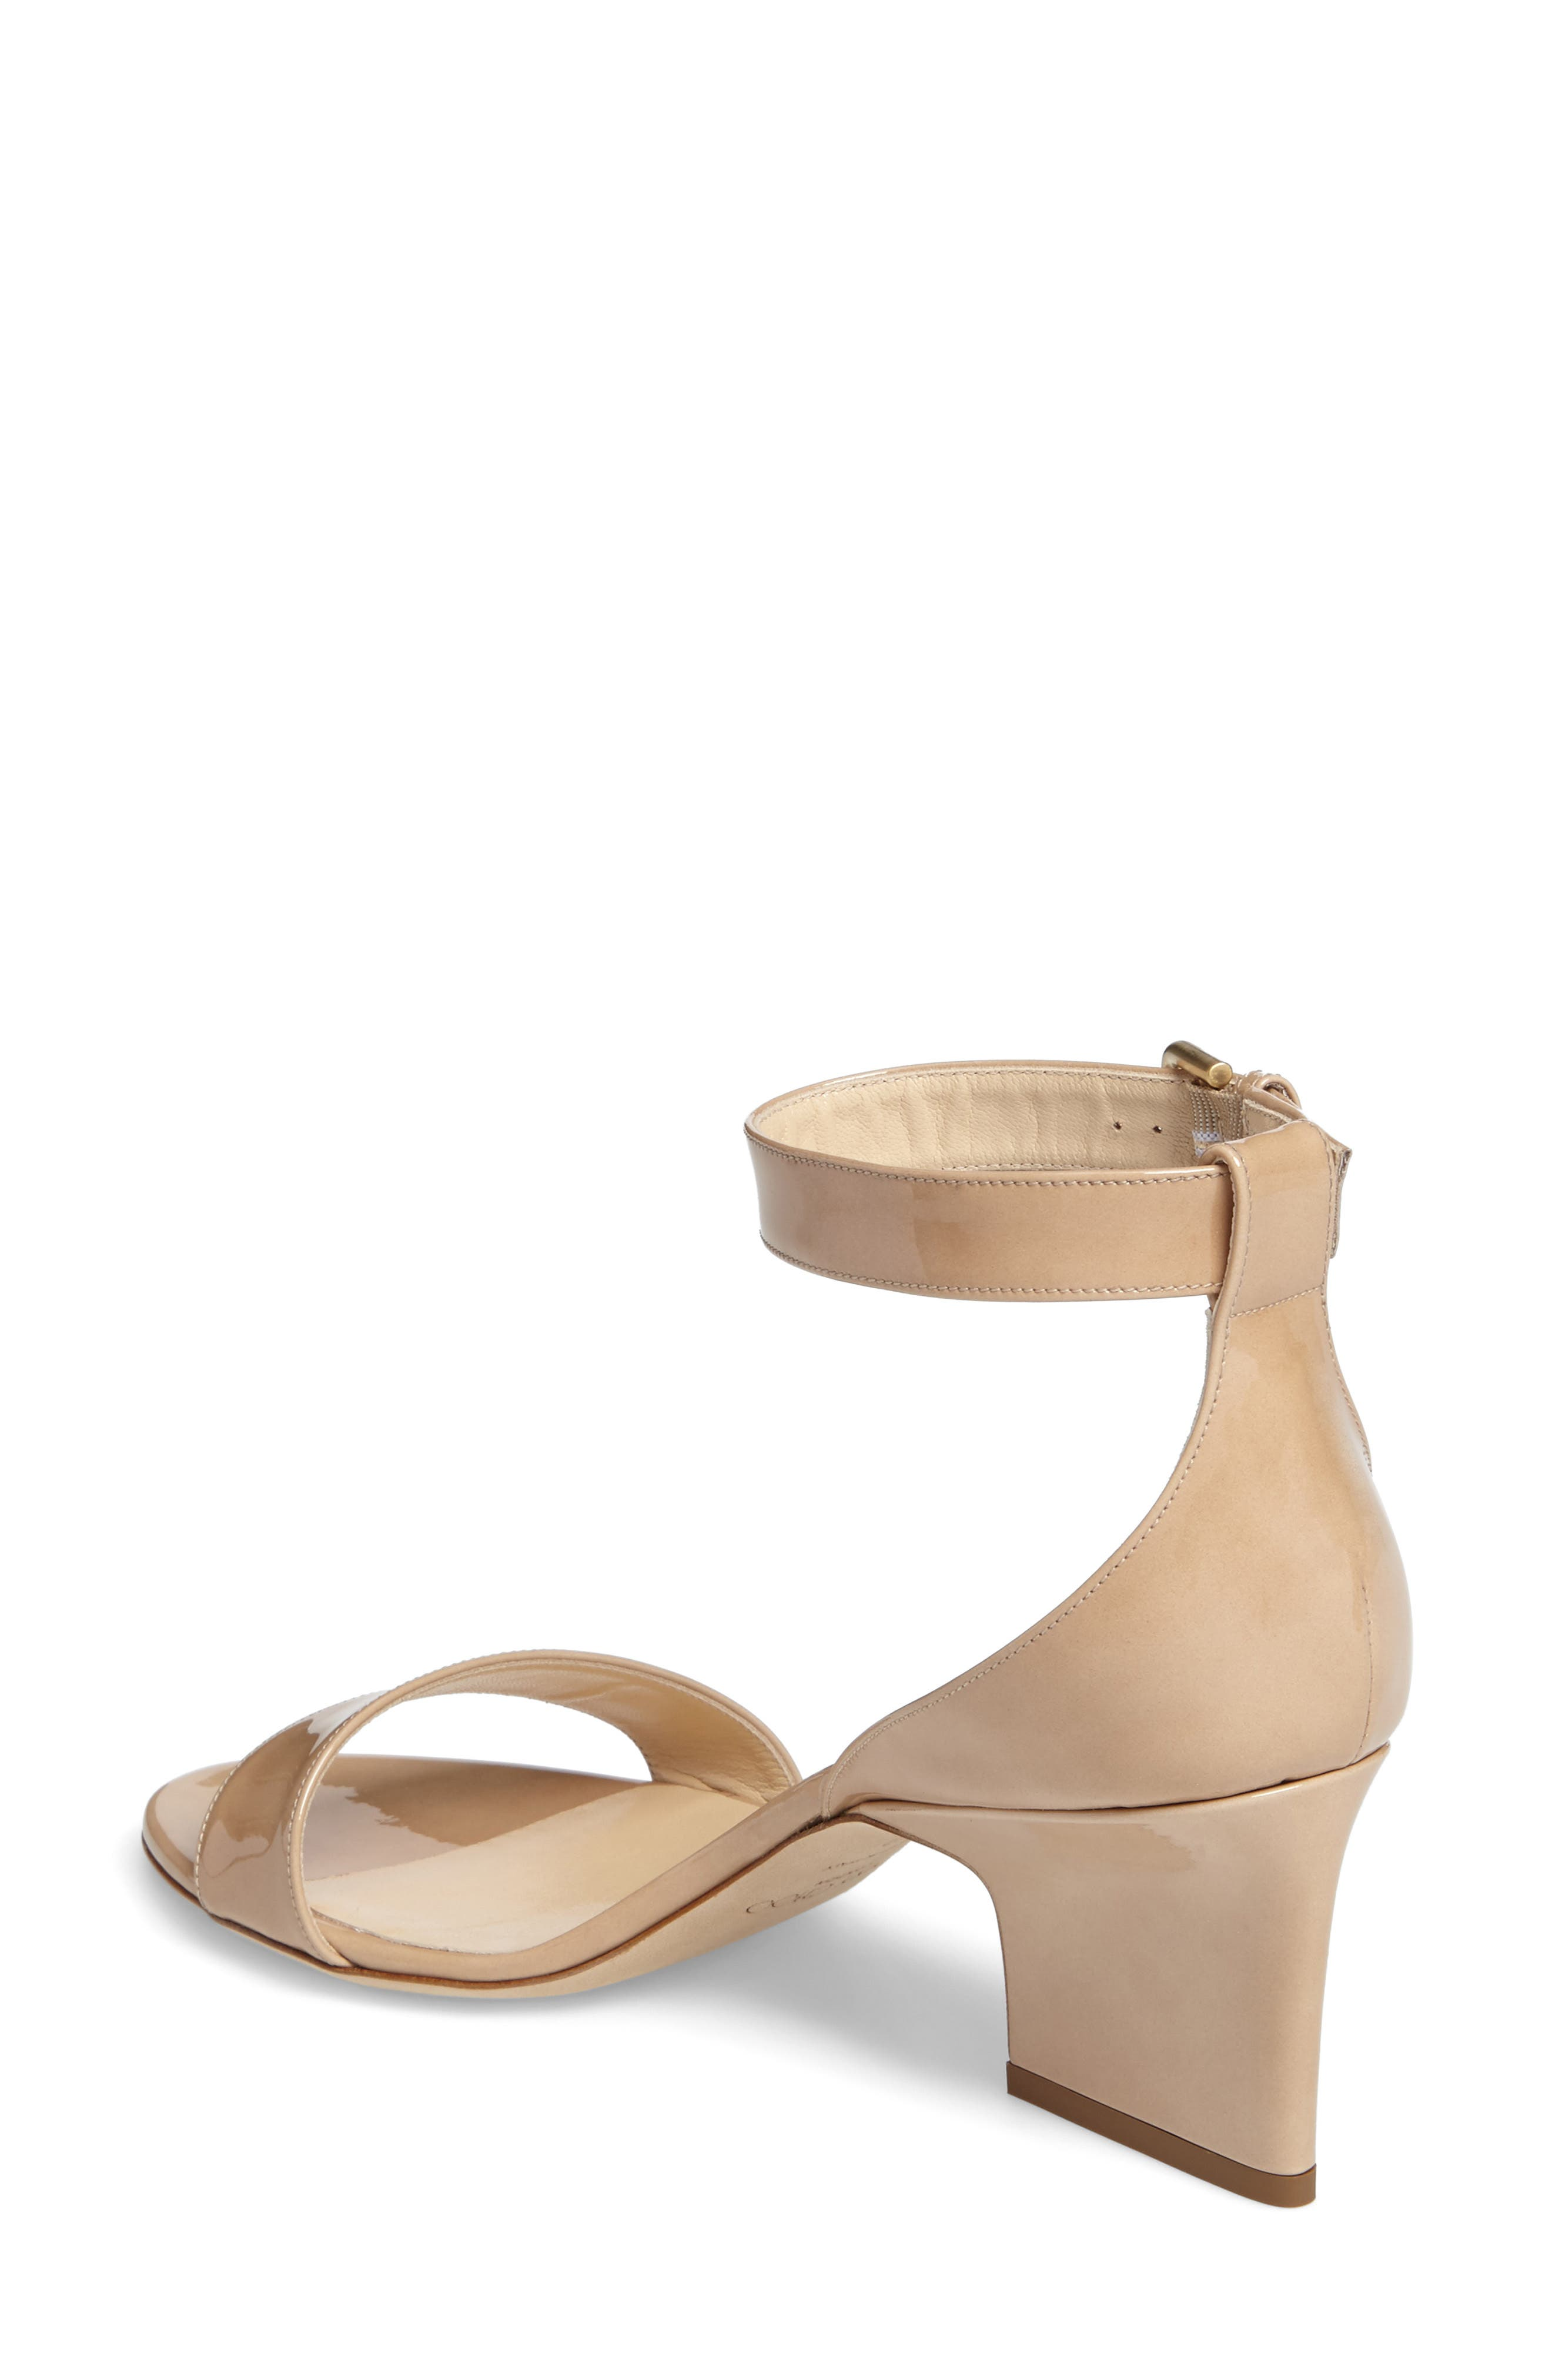 Edina Ankle Strap Sandal,                             Alternate thumbnail 2, color,                             NUDE PATENT